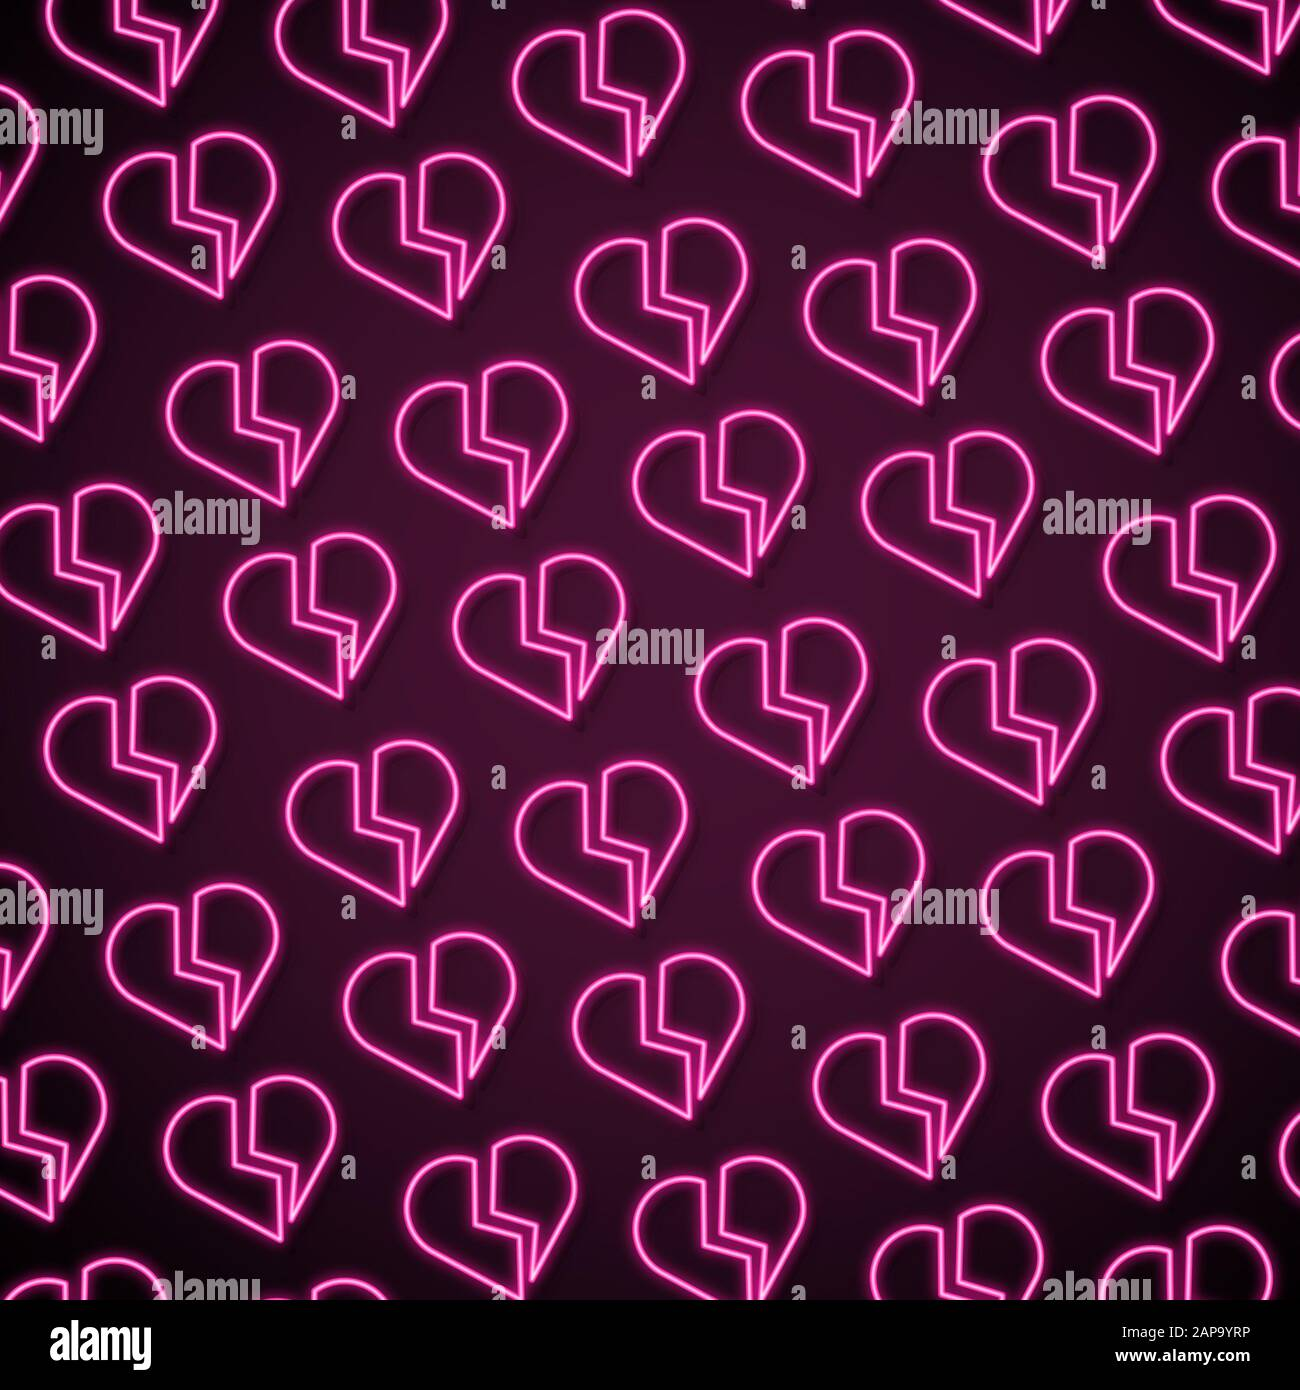 card for saint valentines day neon colored pink broken hearts on dark modern artwork bright wallpaper background pattern for your device design or advertisement romantic love concept 2AP9YRP